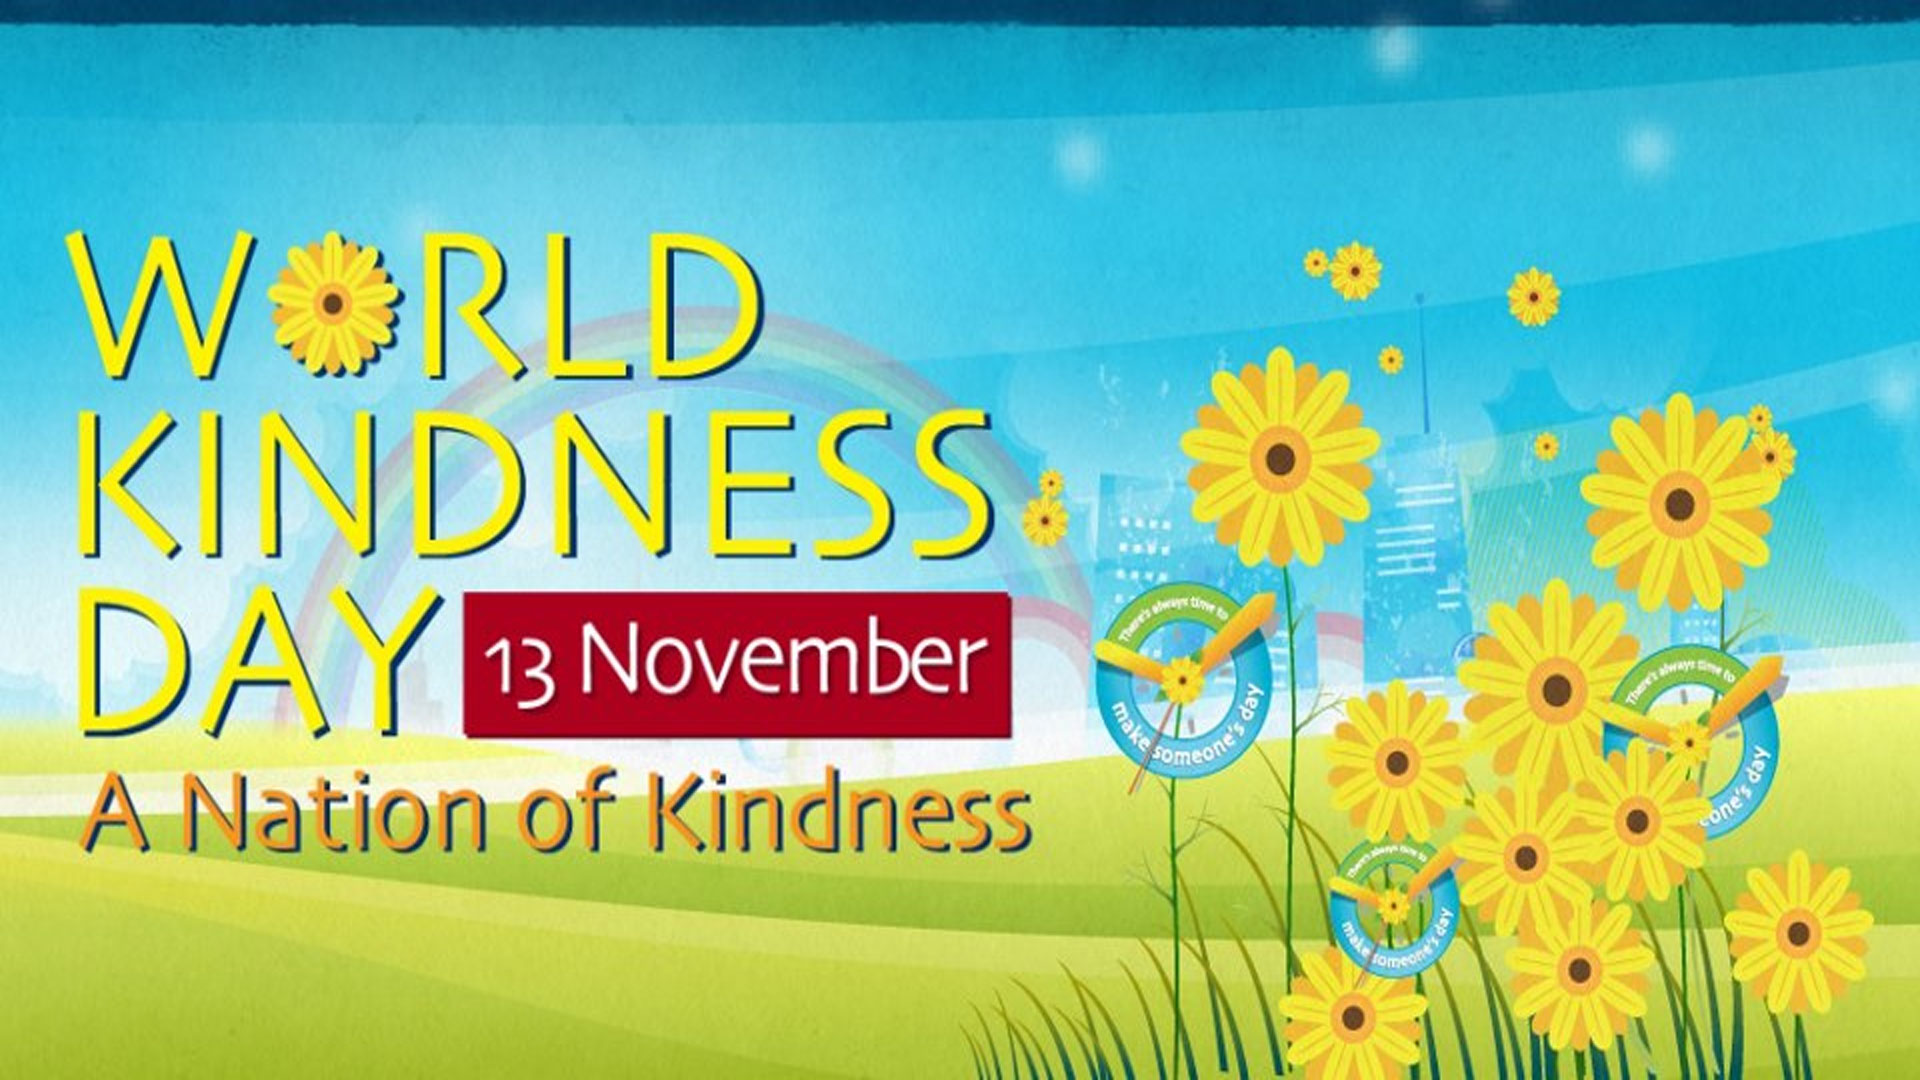 B kind Day is Today November 13.